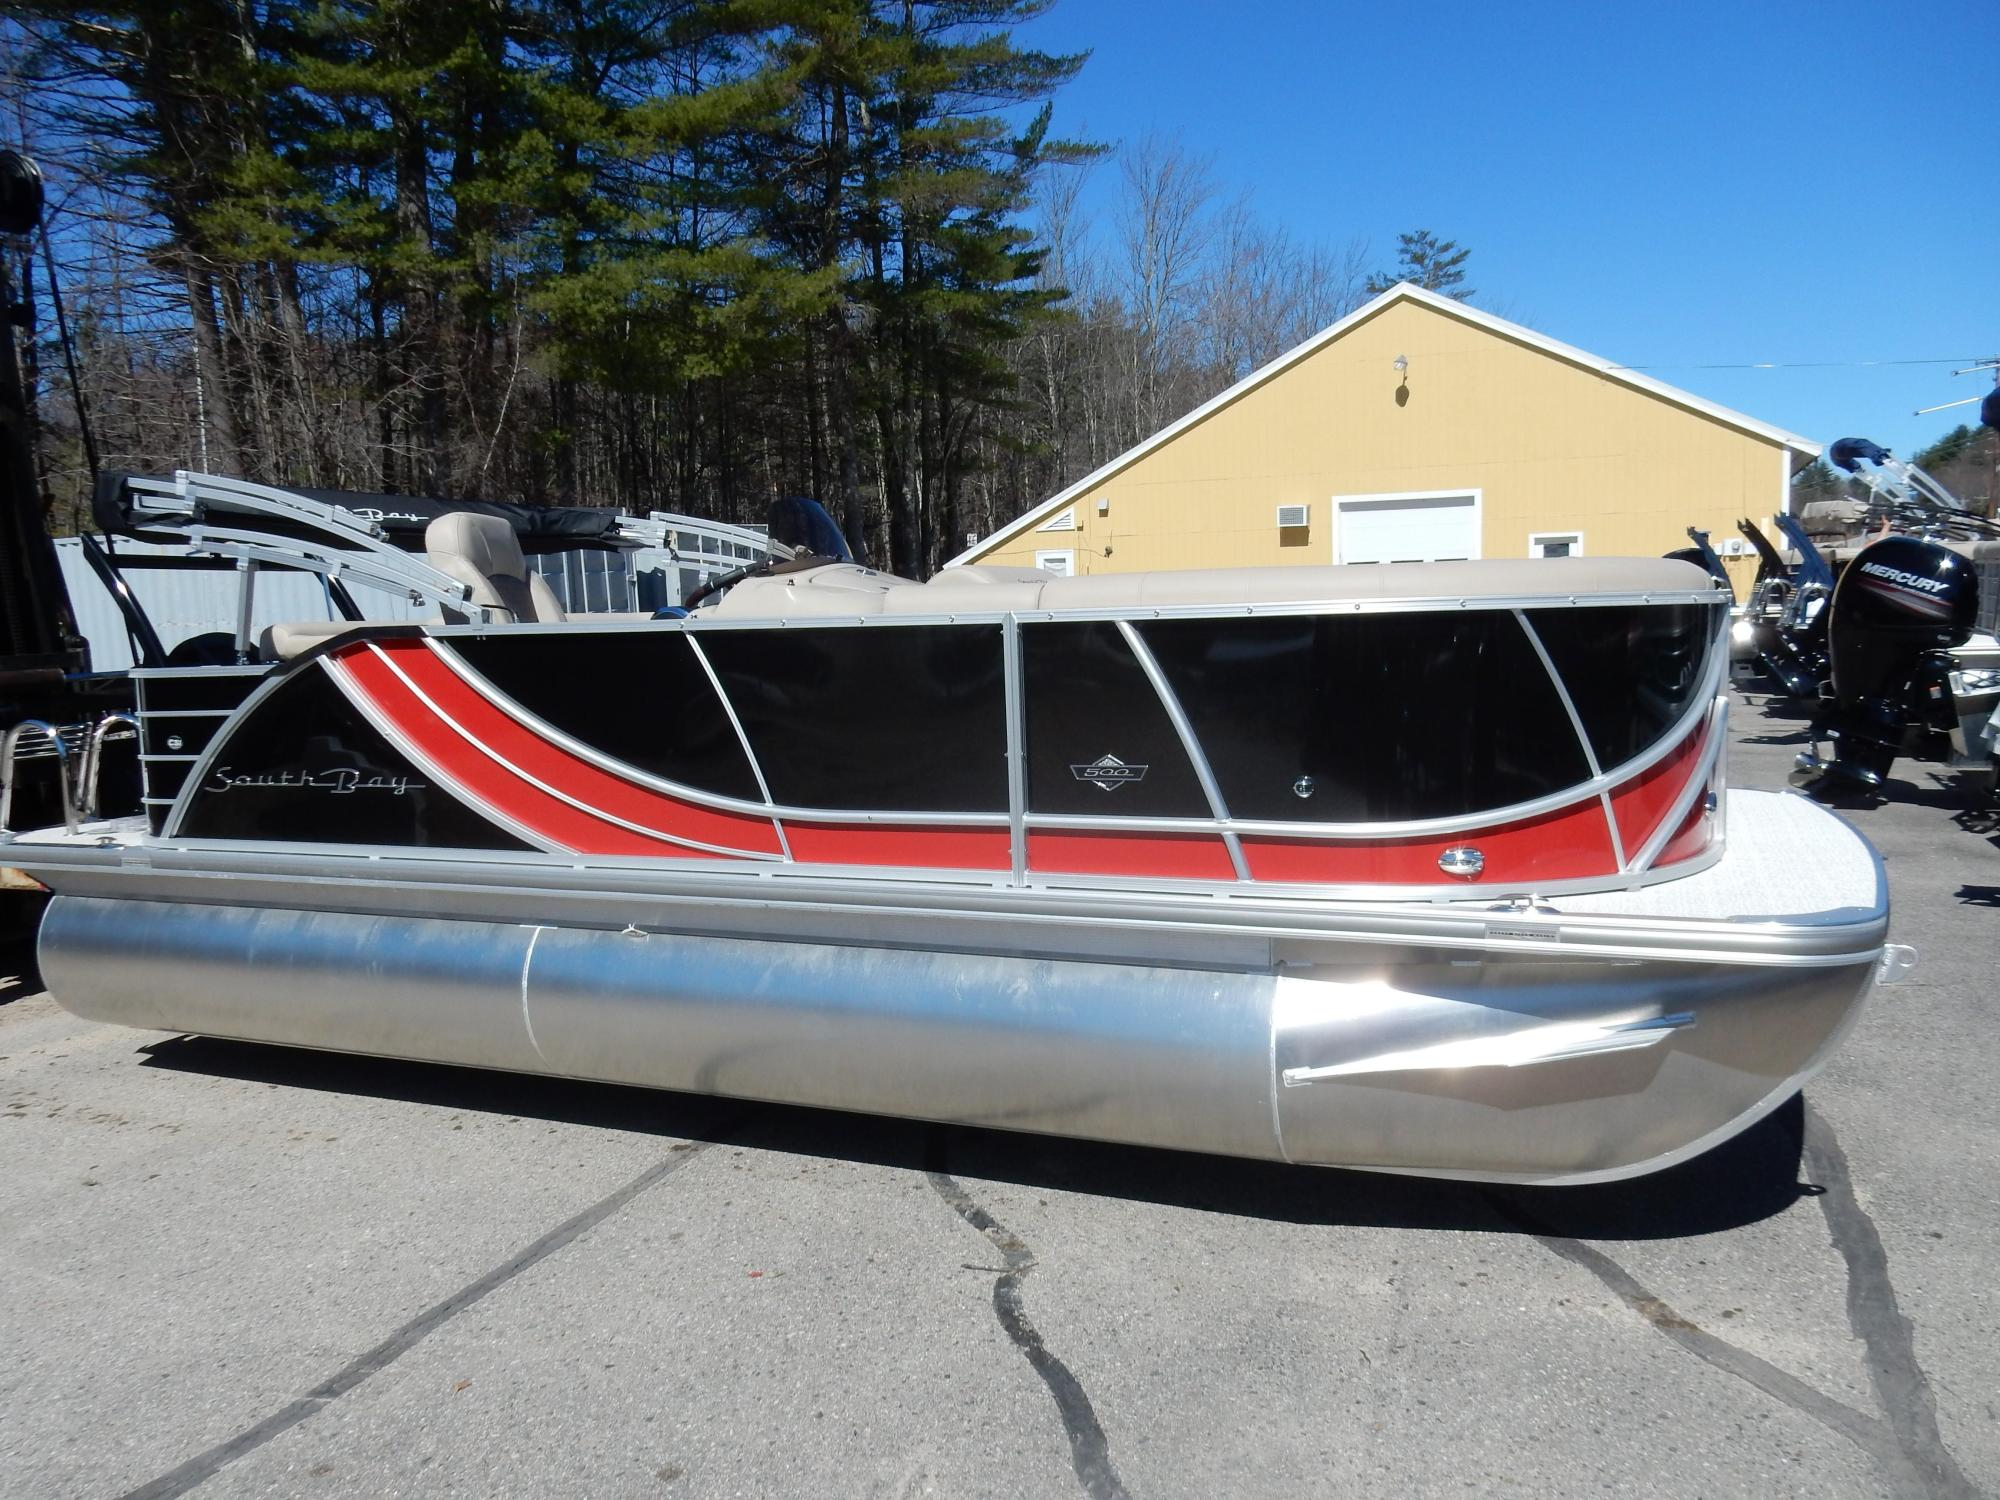 hight resolution of 2019 south bay 519cr center ossipee new hampshire wards boat shop inc center ossipee nh new used boat sales and service